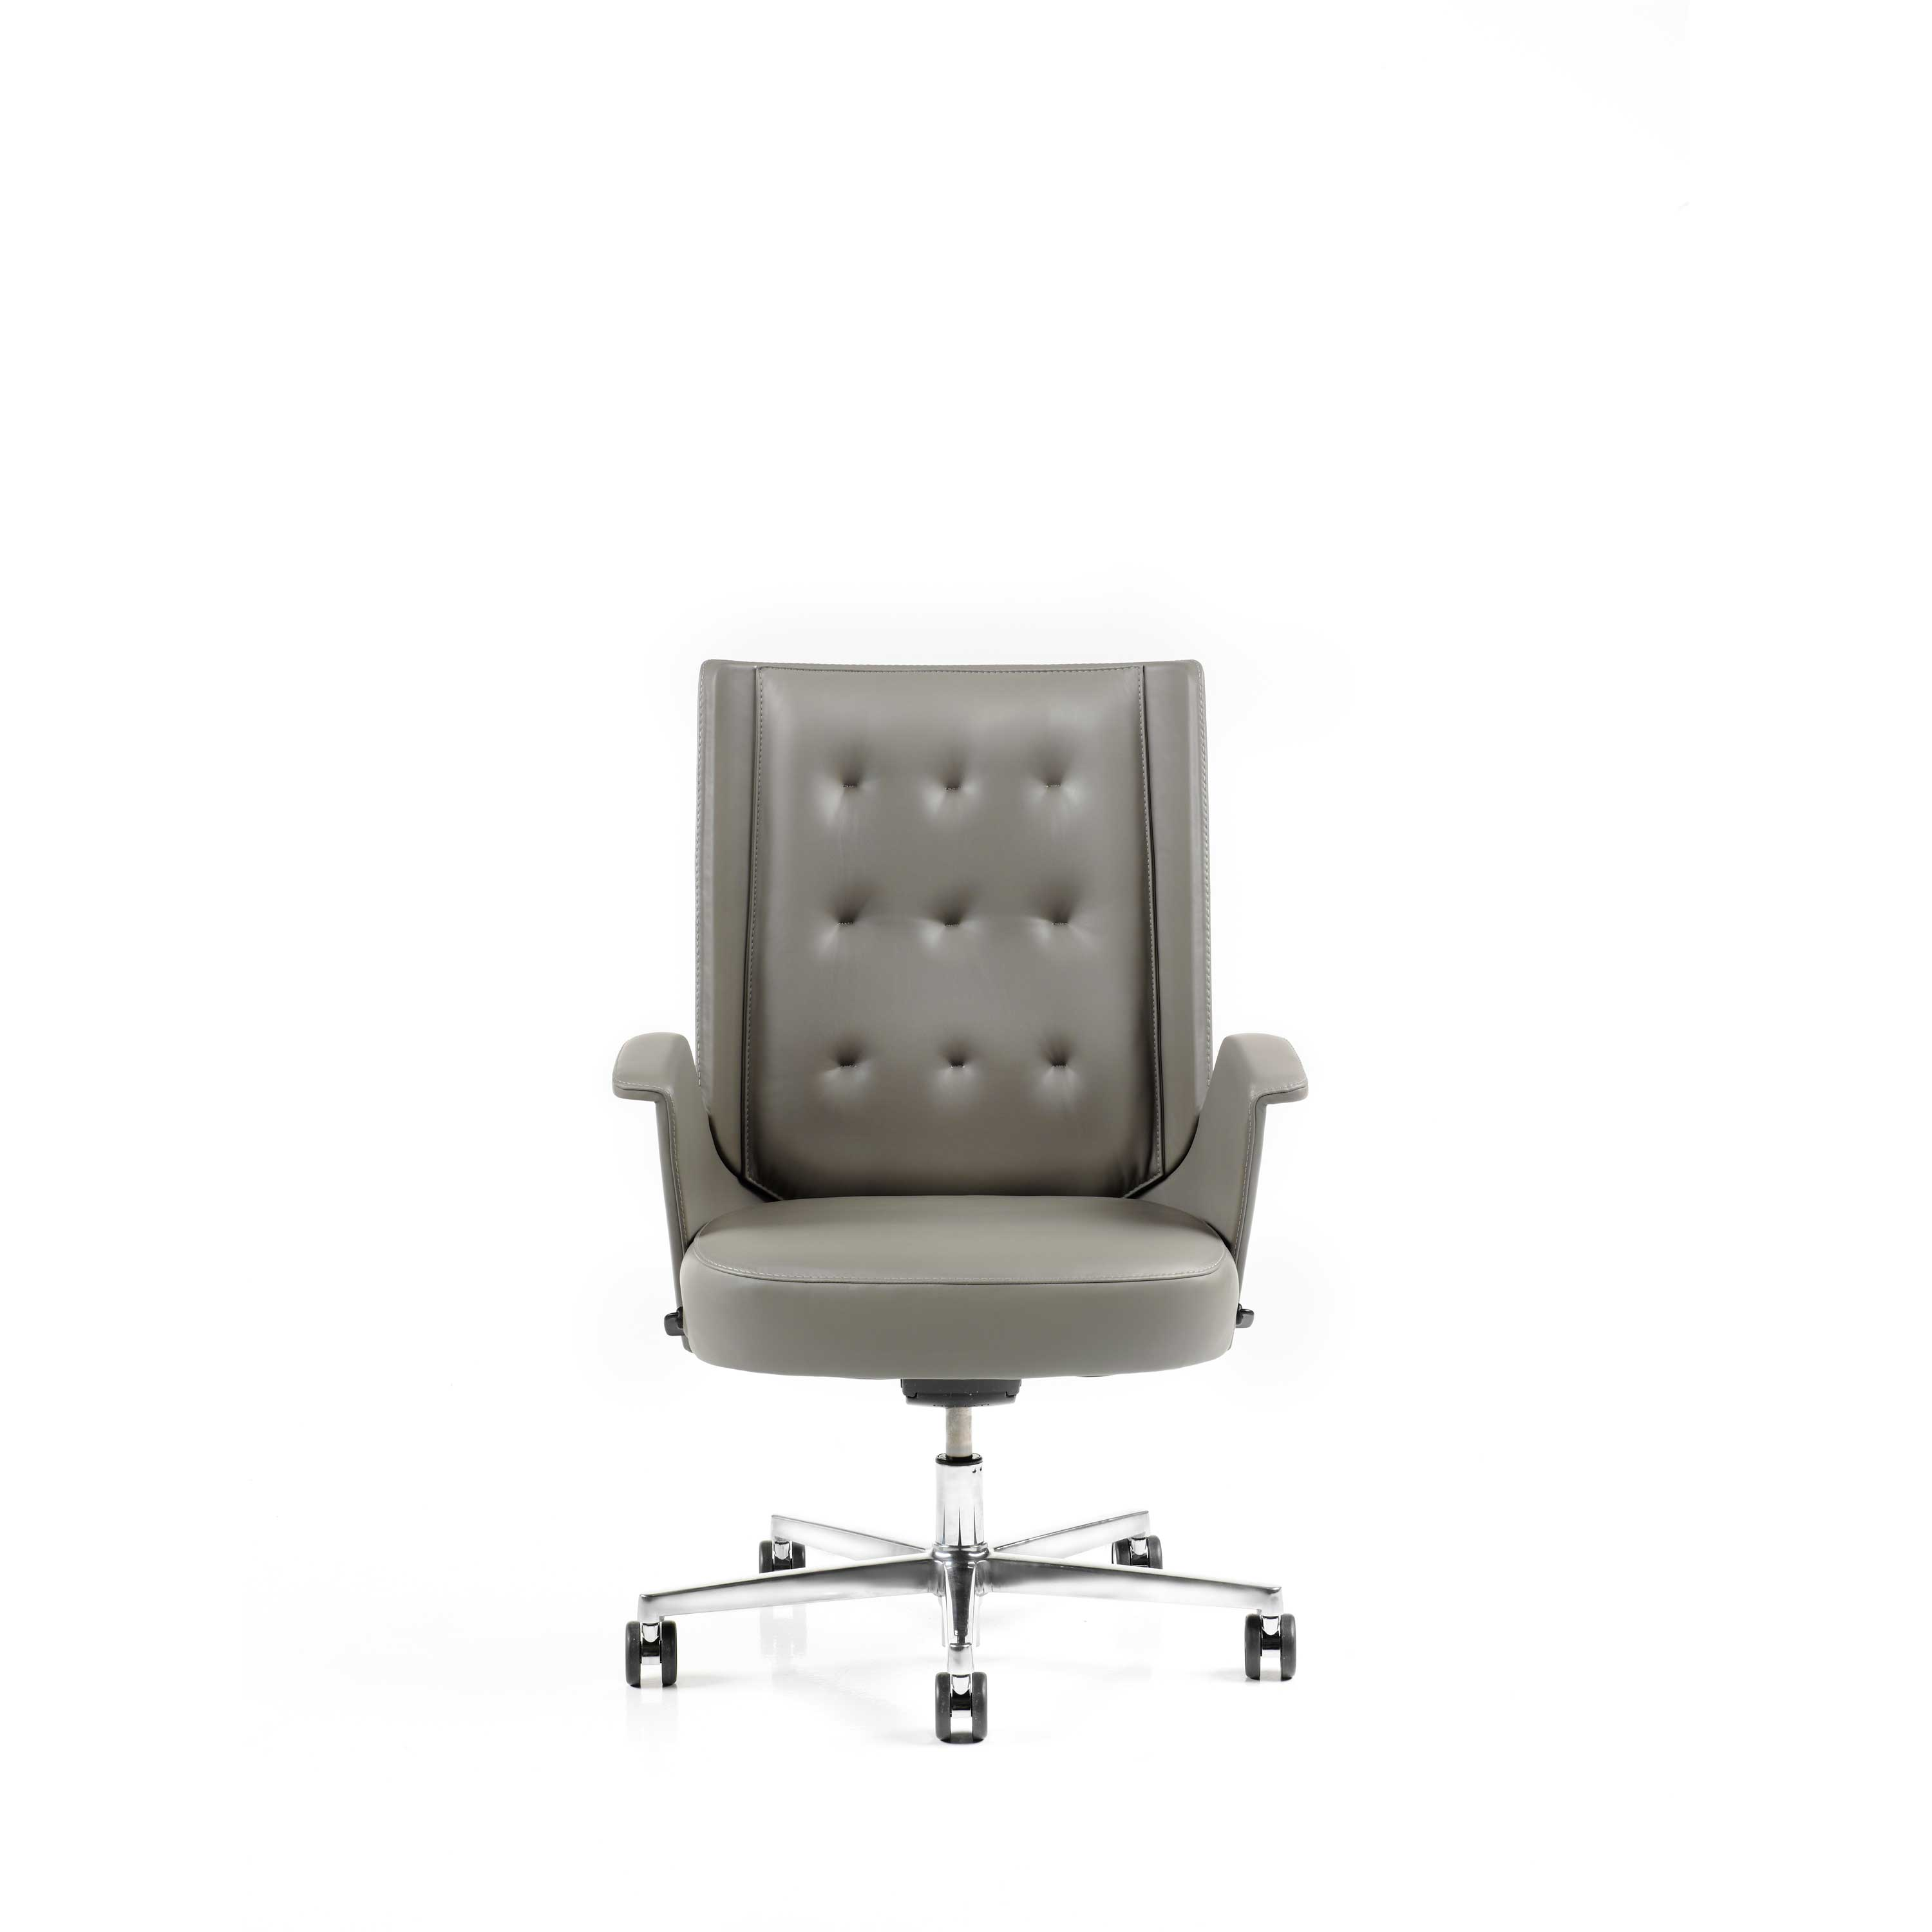 12S_Estel_Comfort&Relax_Office-Chair_Embrasse